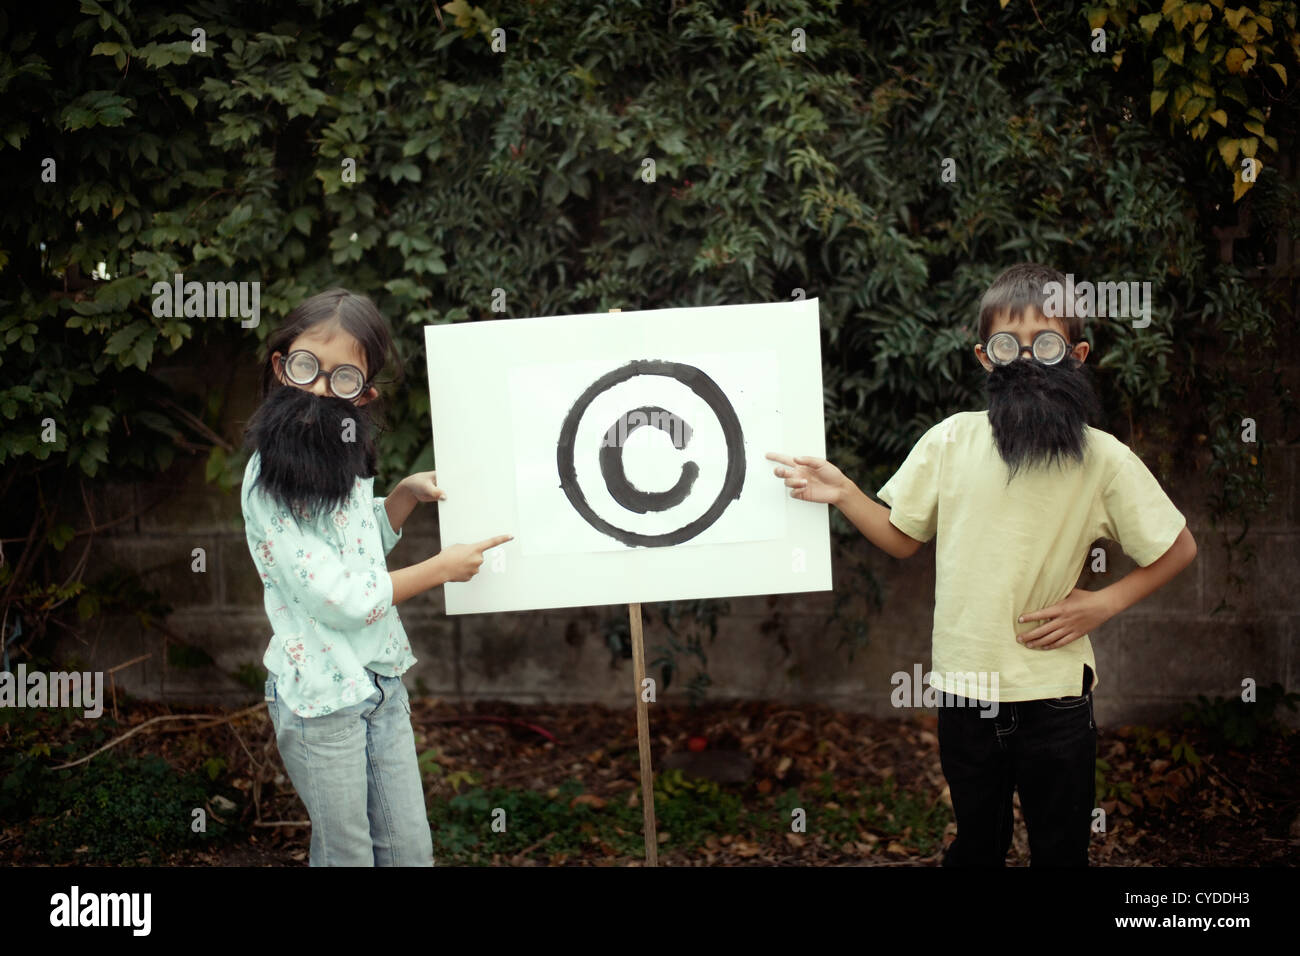 Boy and girl dressed up with fake beards point to copyright symbol. - Stock Image